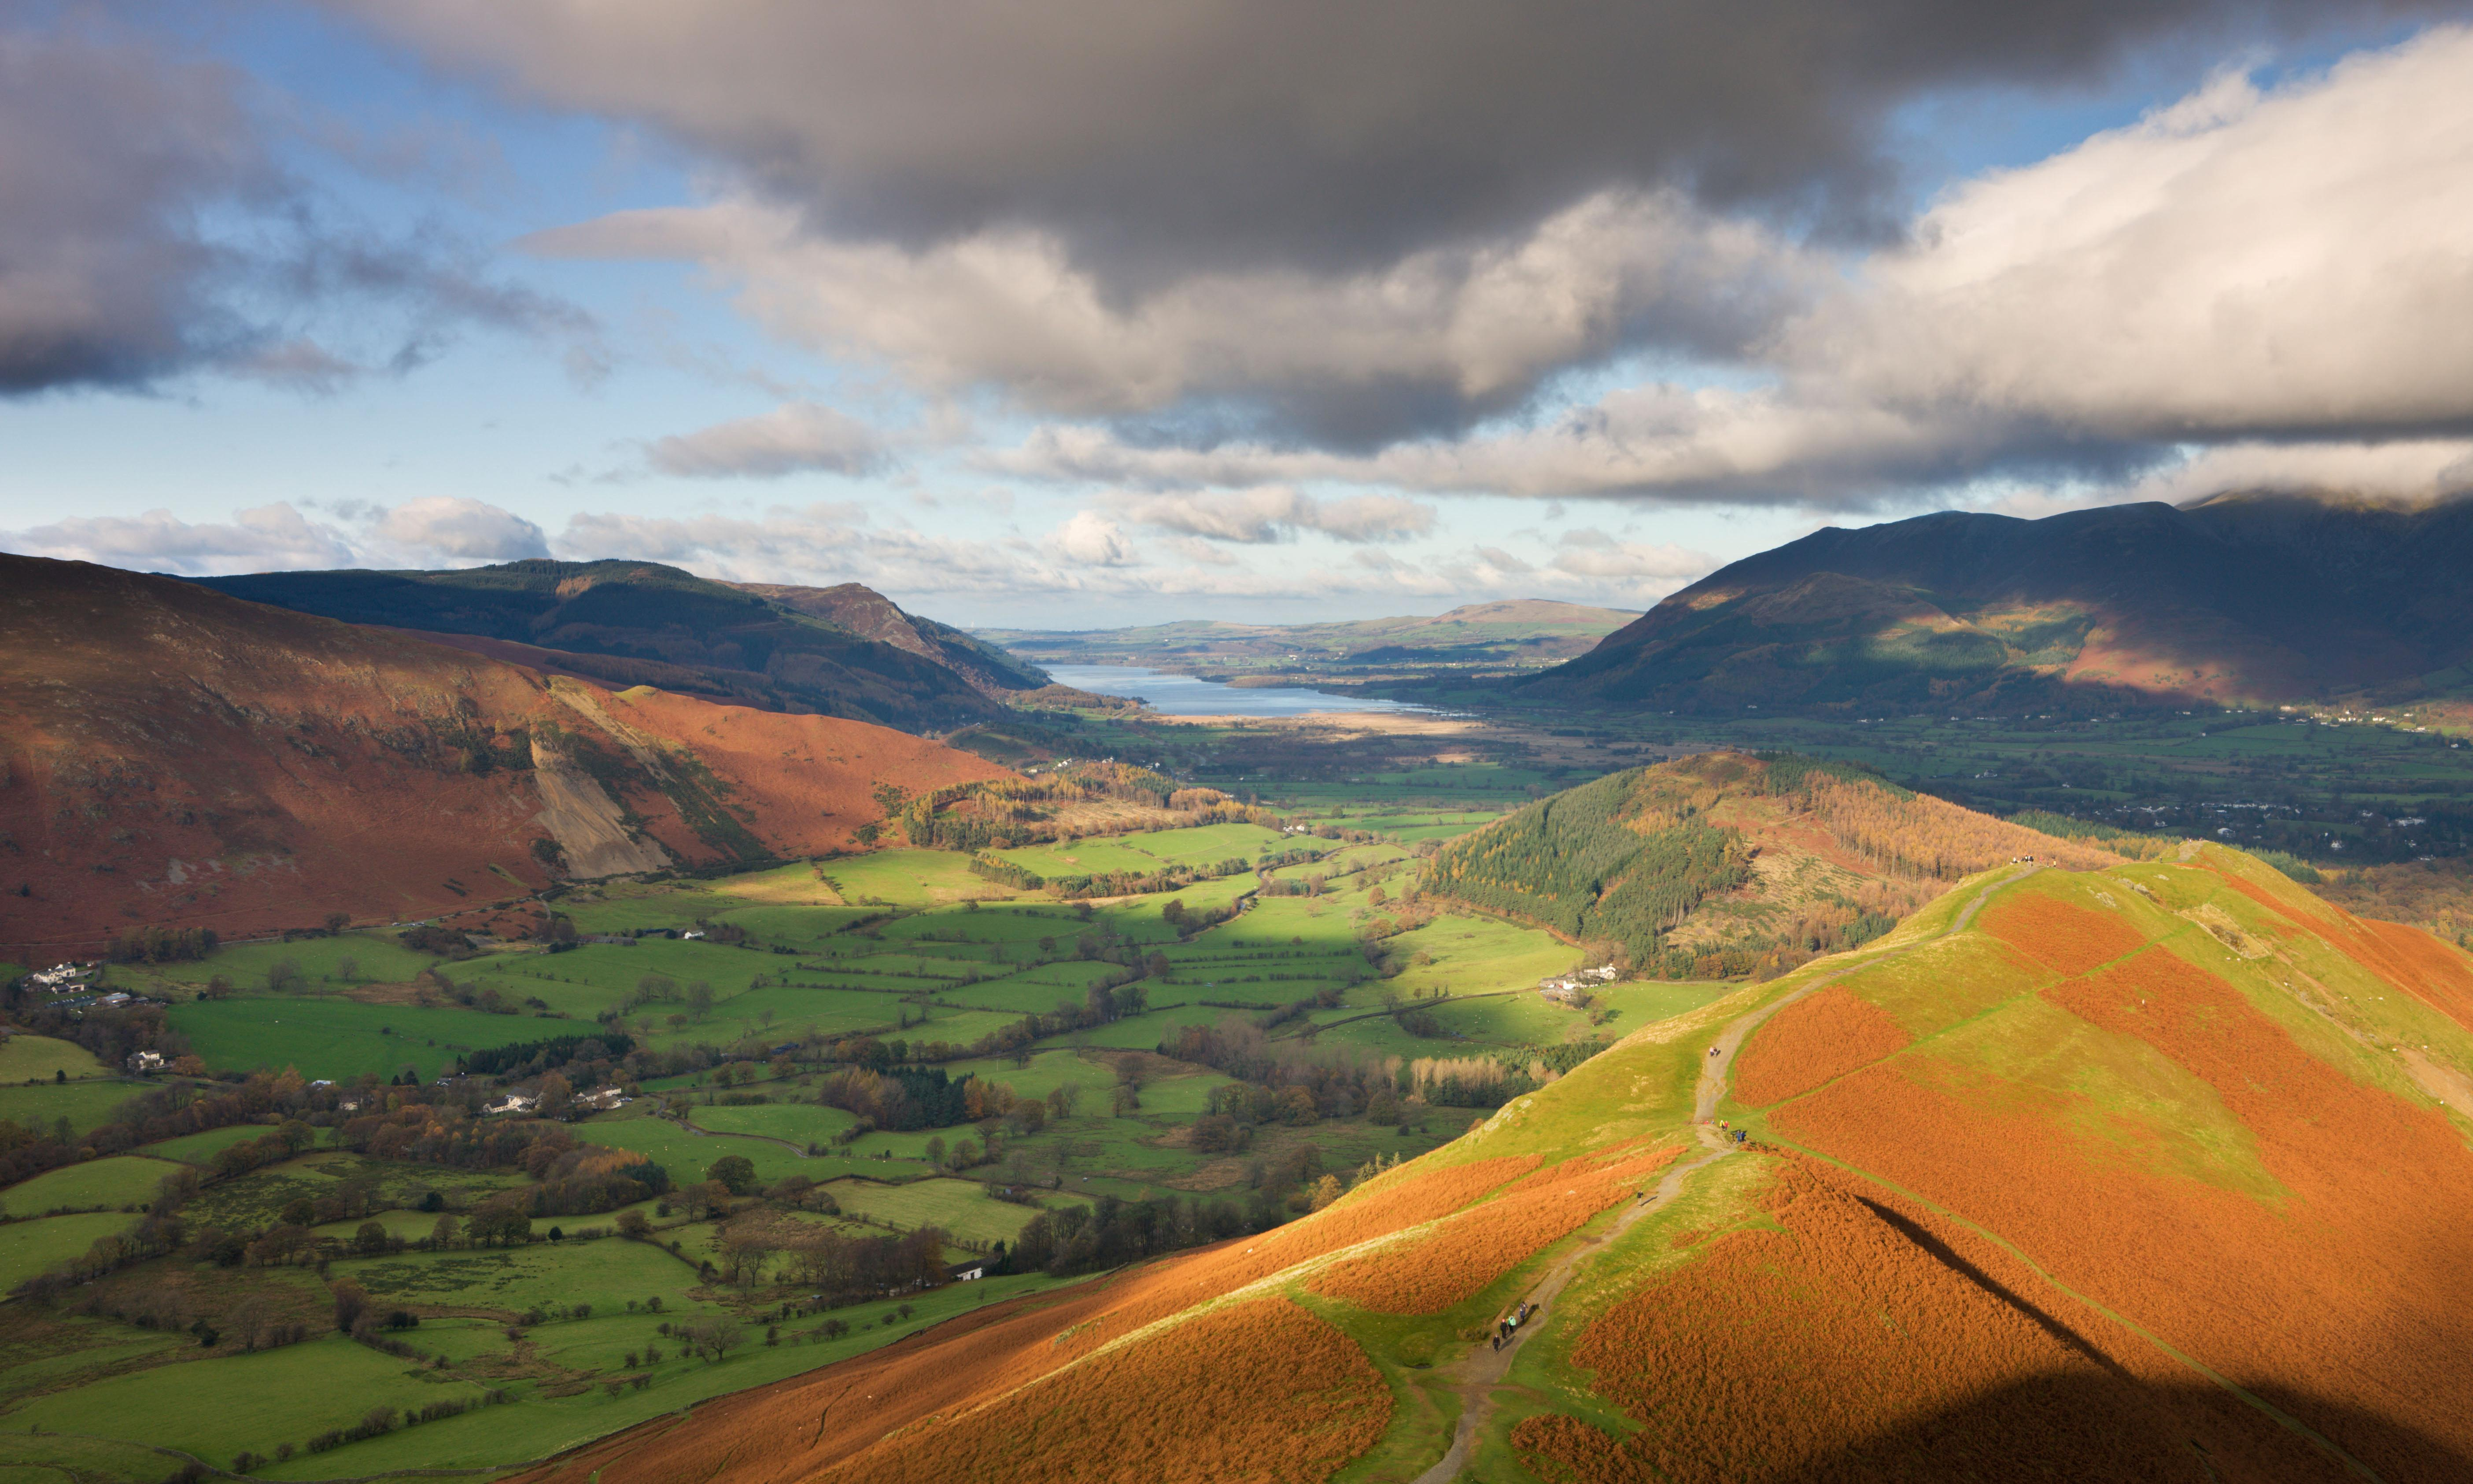 England's national parks 'must do more to protect nature'